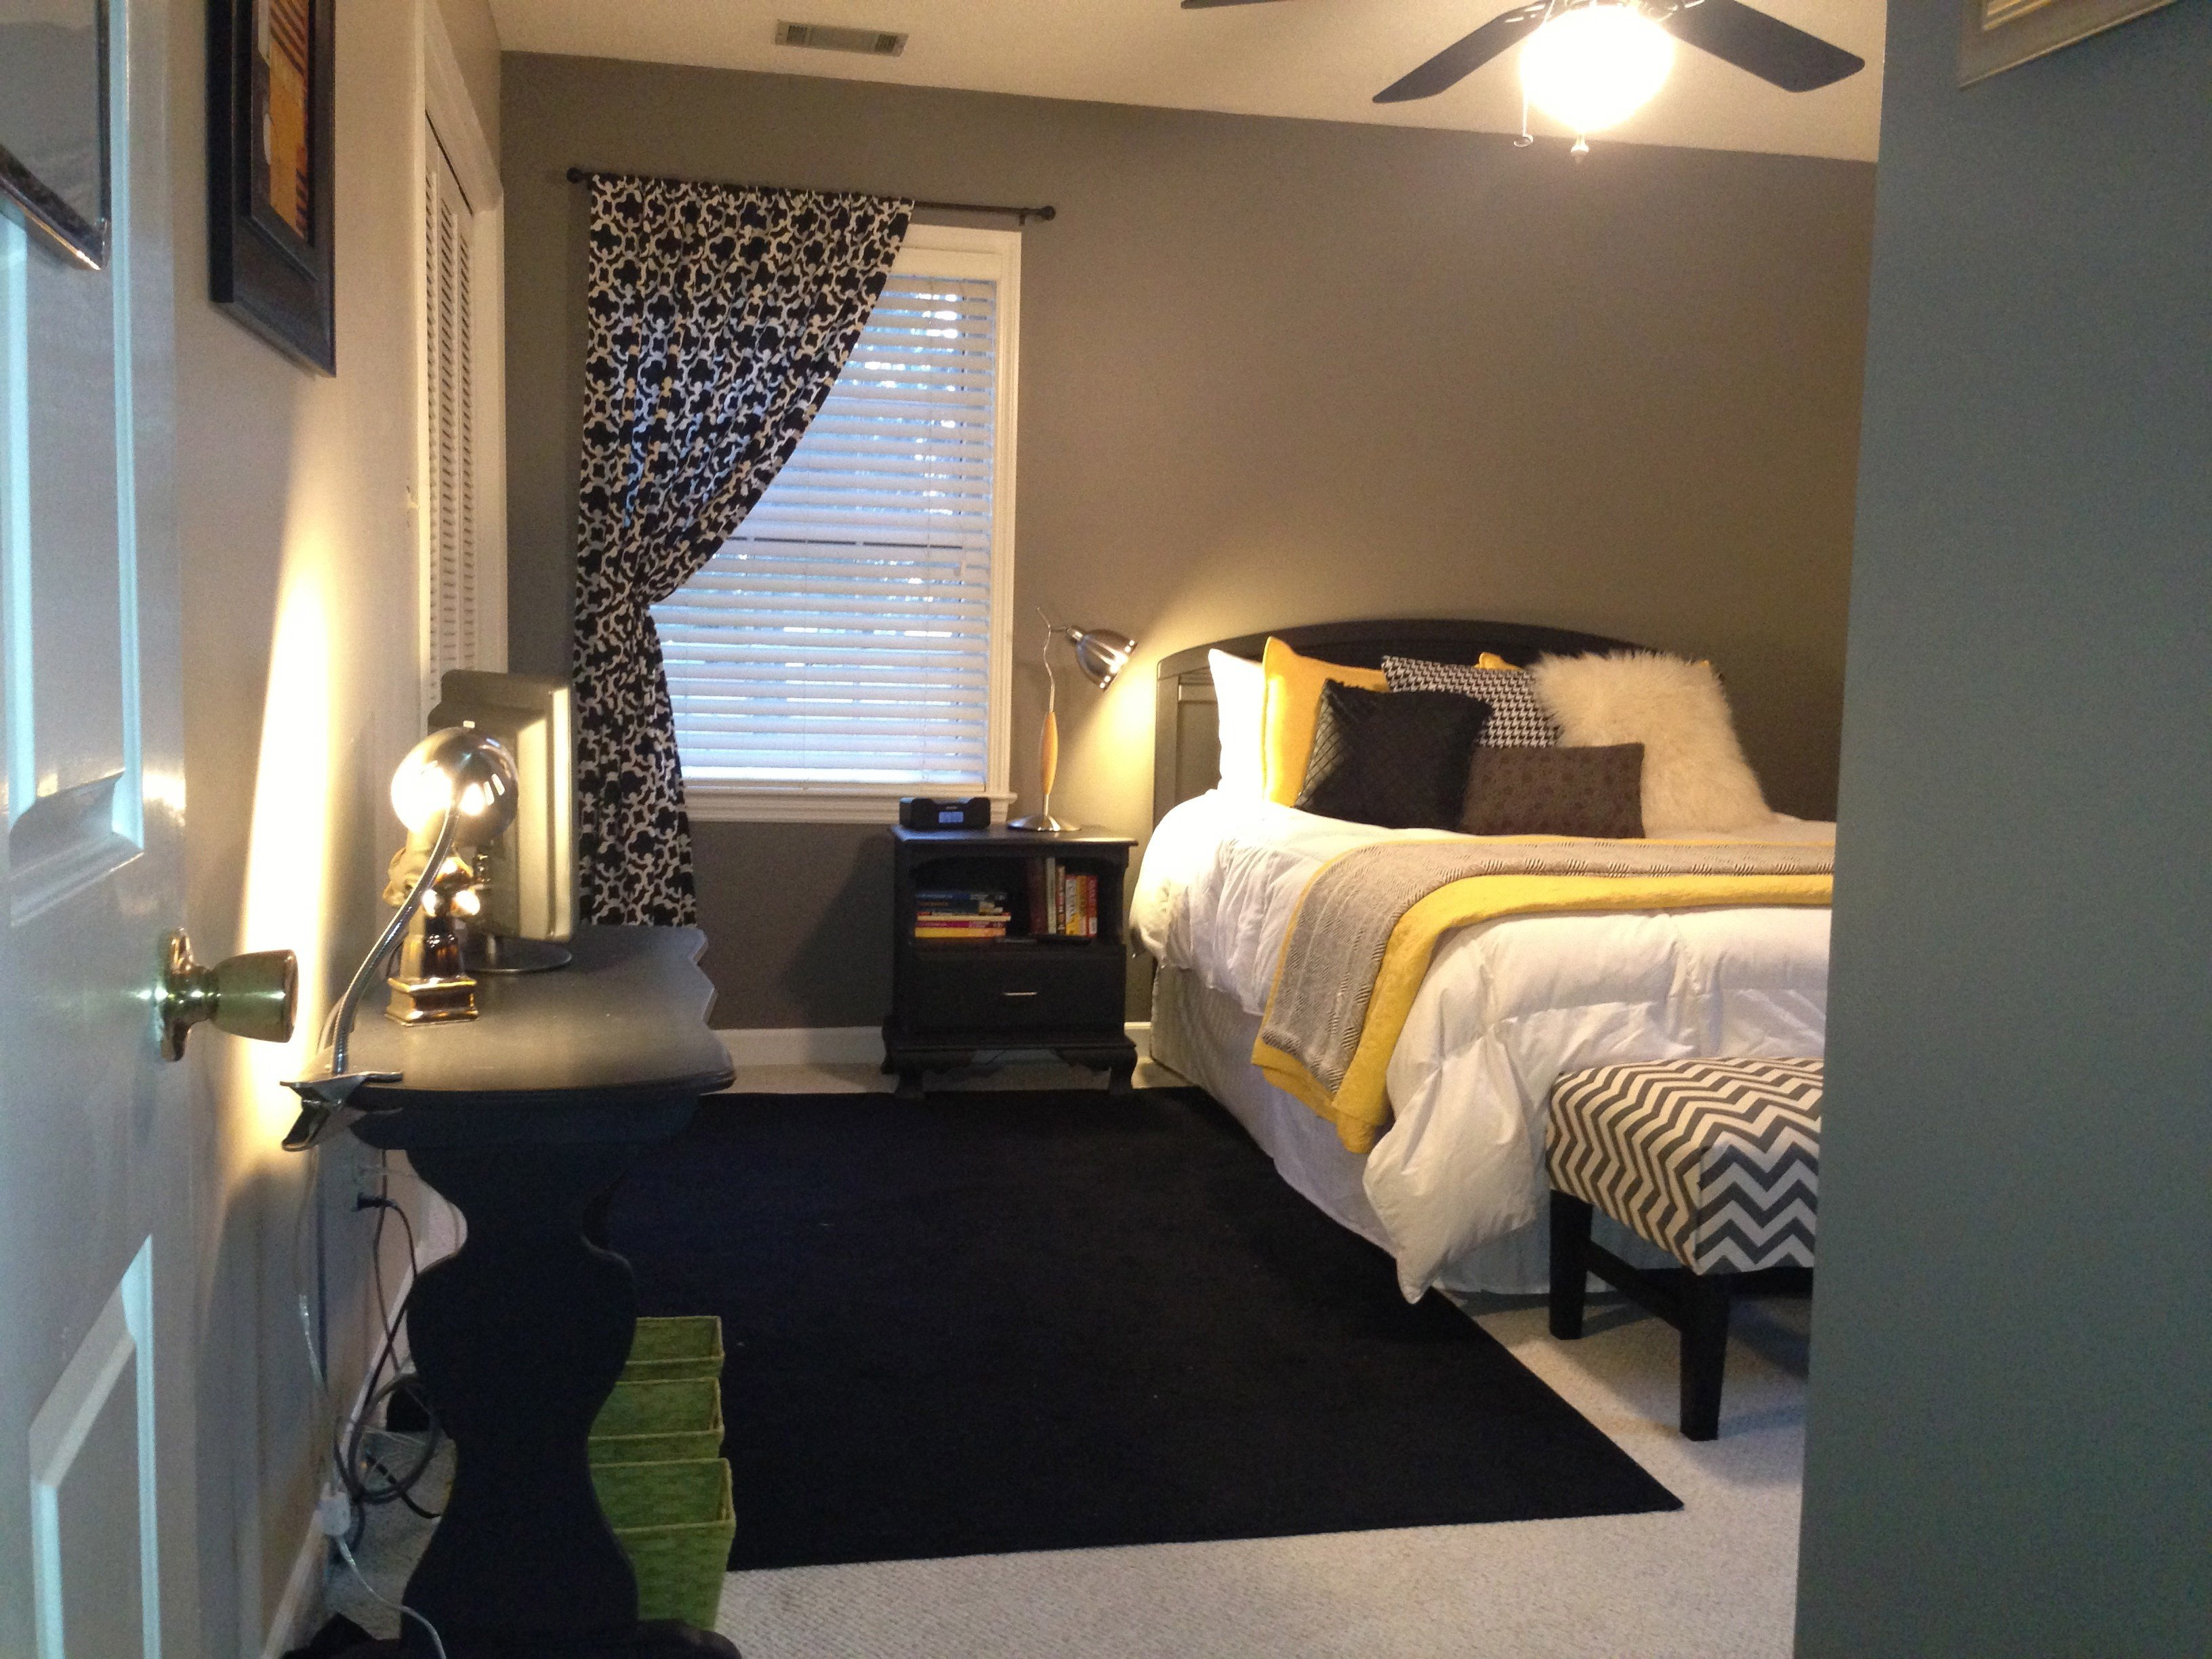 Best Guest Bedroom Starting Simple 101 With Pictures